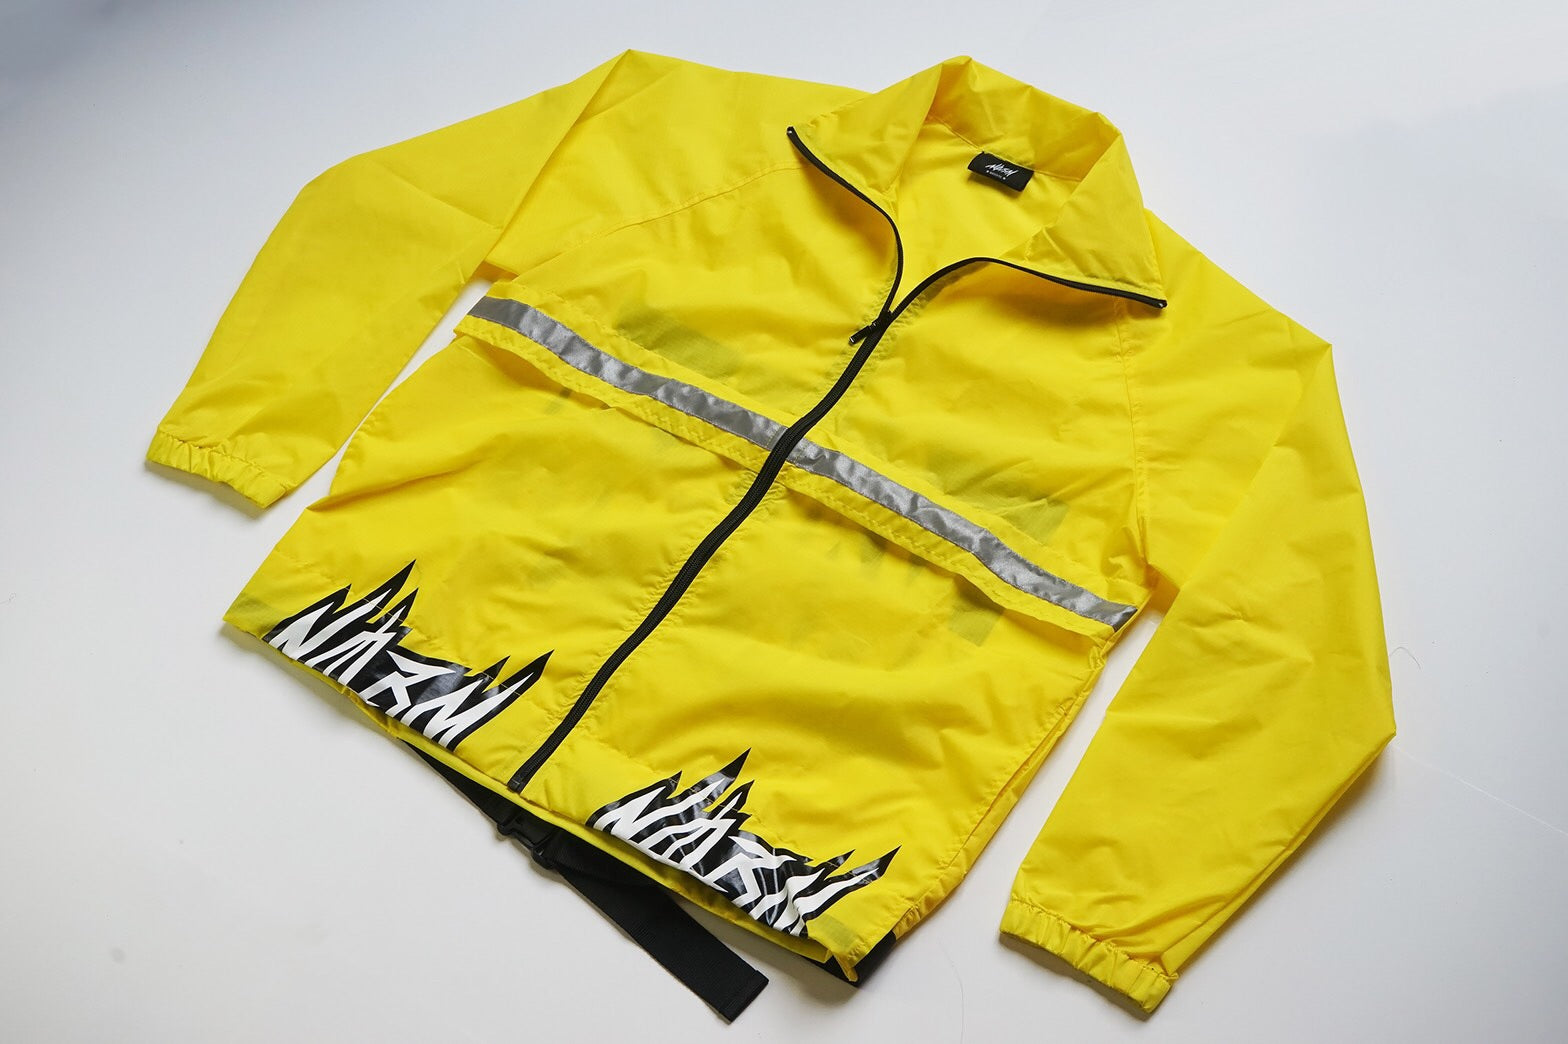 Windbreaker yellow